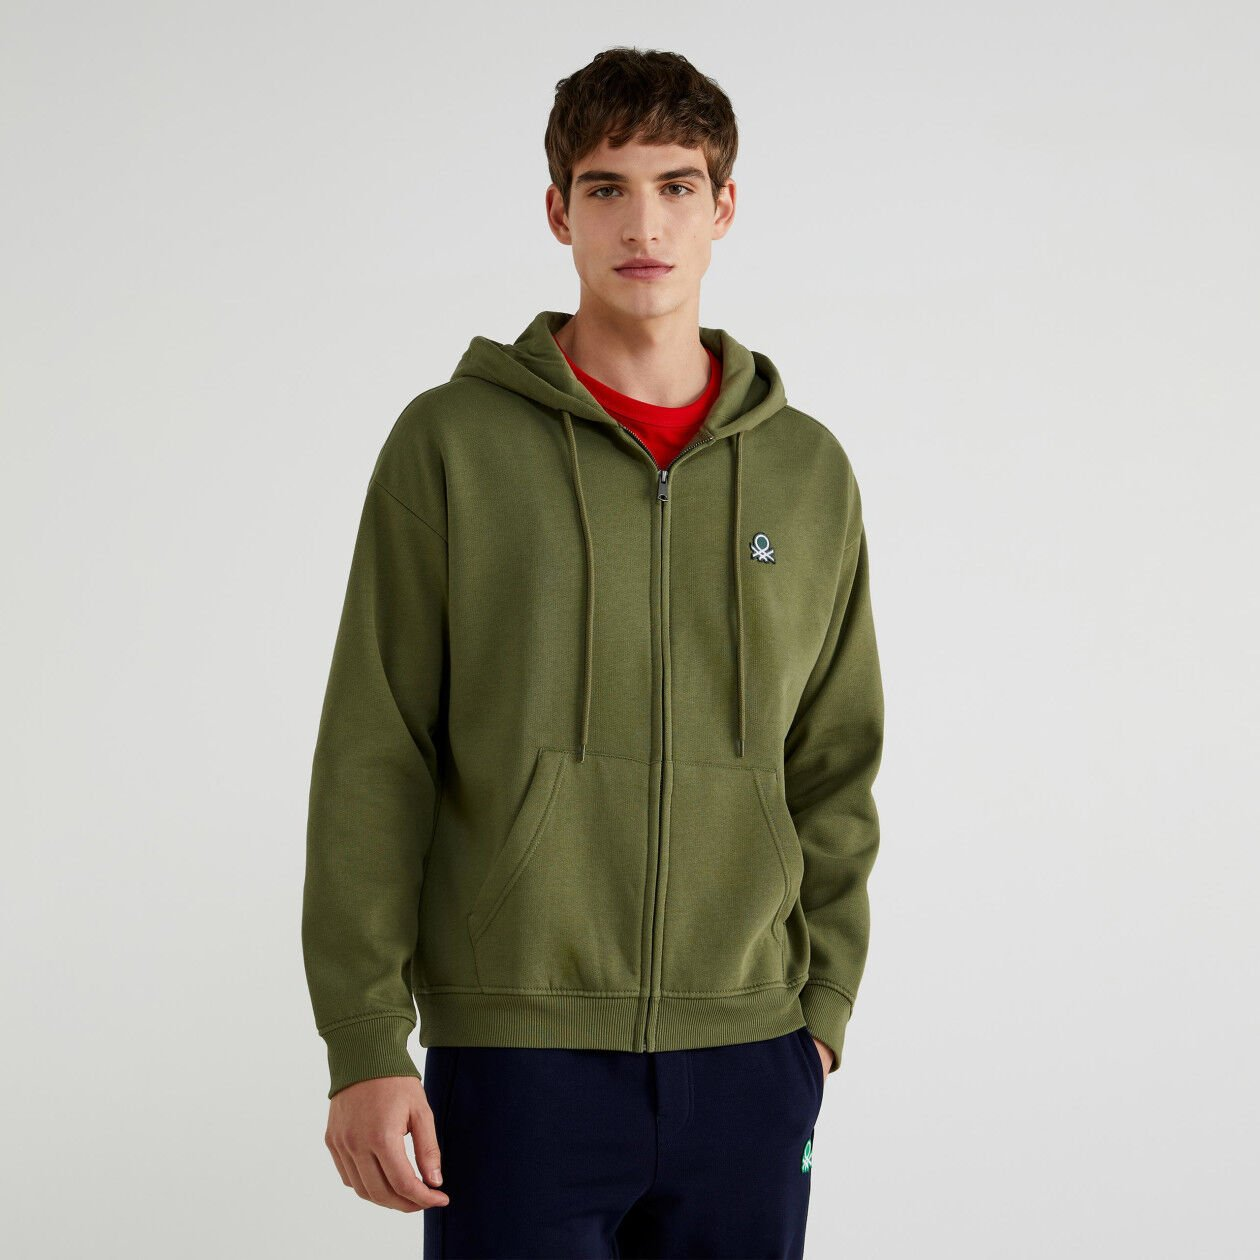 Hoodie with pockets